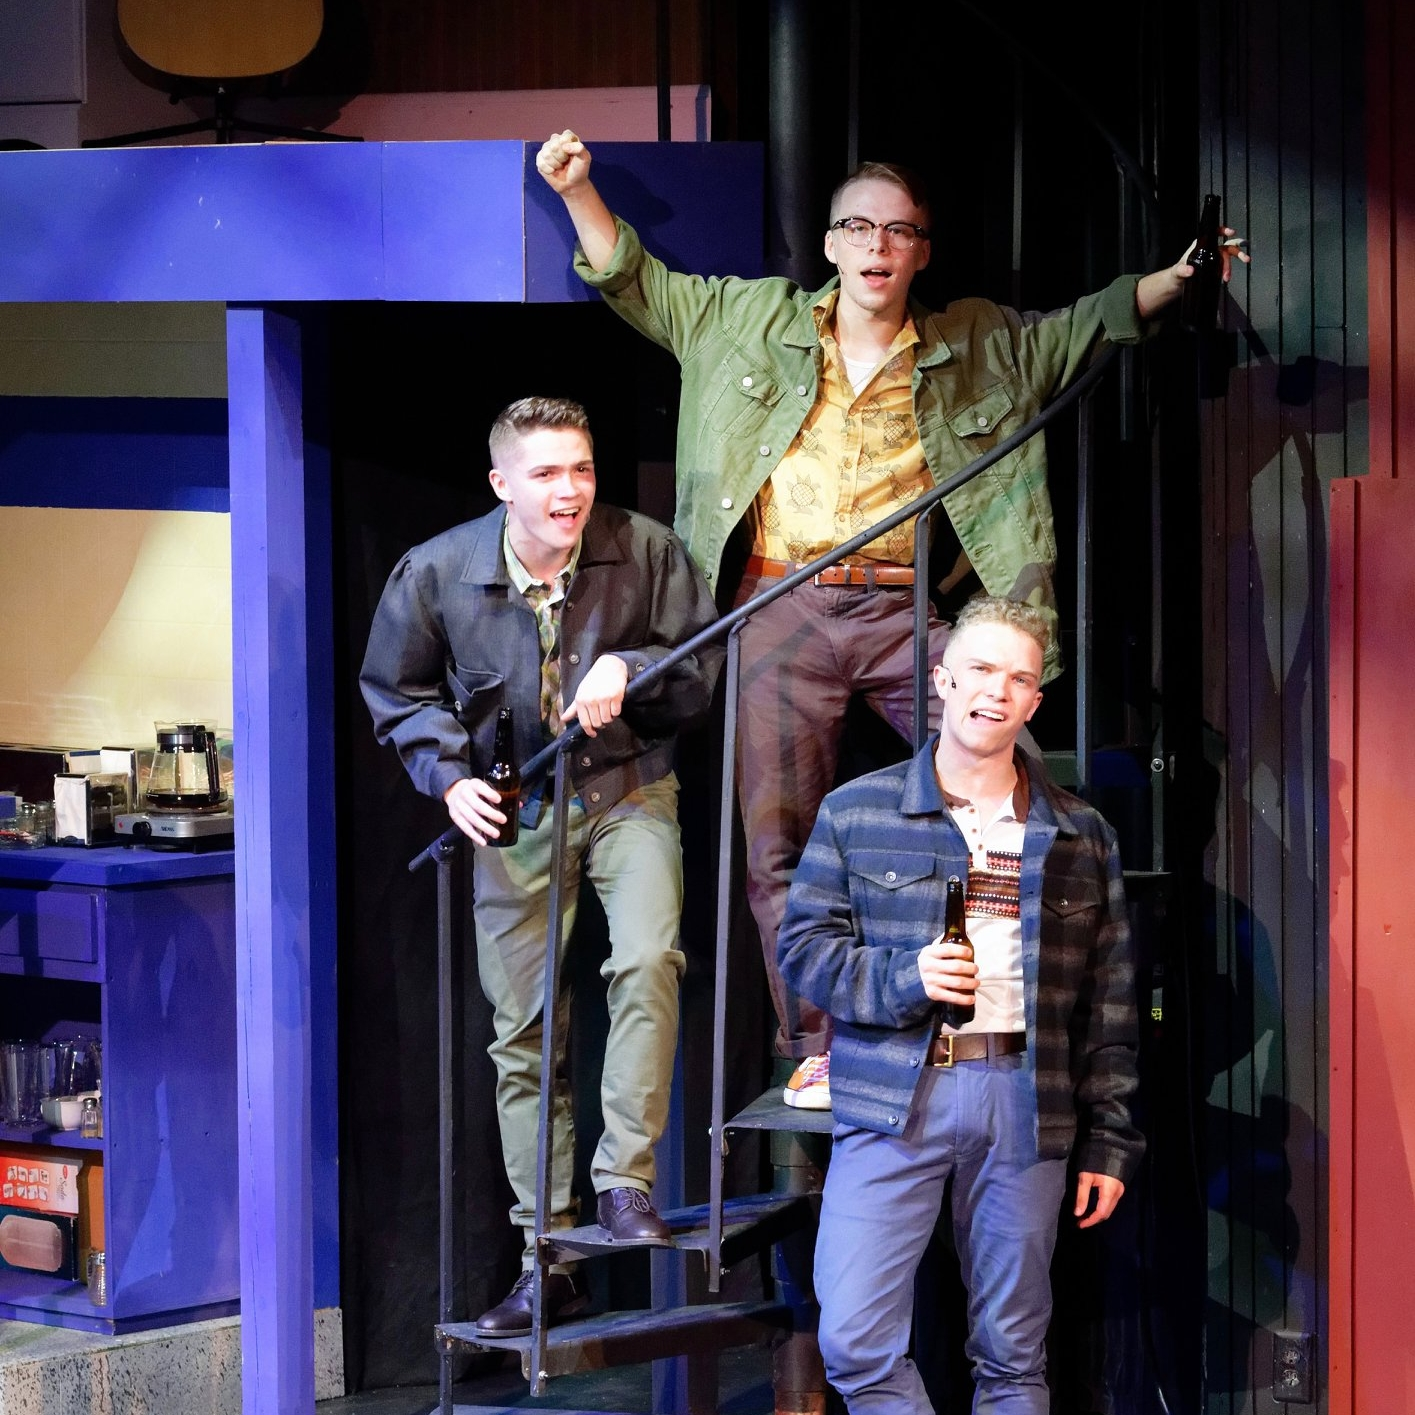 DOGFIGHT Music & Lyrics by Benj Pasek and Justin PaulBook by Peter DuchanJunior Players - Directed by Kelsey Leigh ErviMusic Directed by Mark MullinoScenic Design by Bradley GrayLighting Design by Christopher TrevinoCostume Design by Victor Newman BrockwellSound Design by Dana SilerPhotos by Junior Players